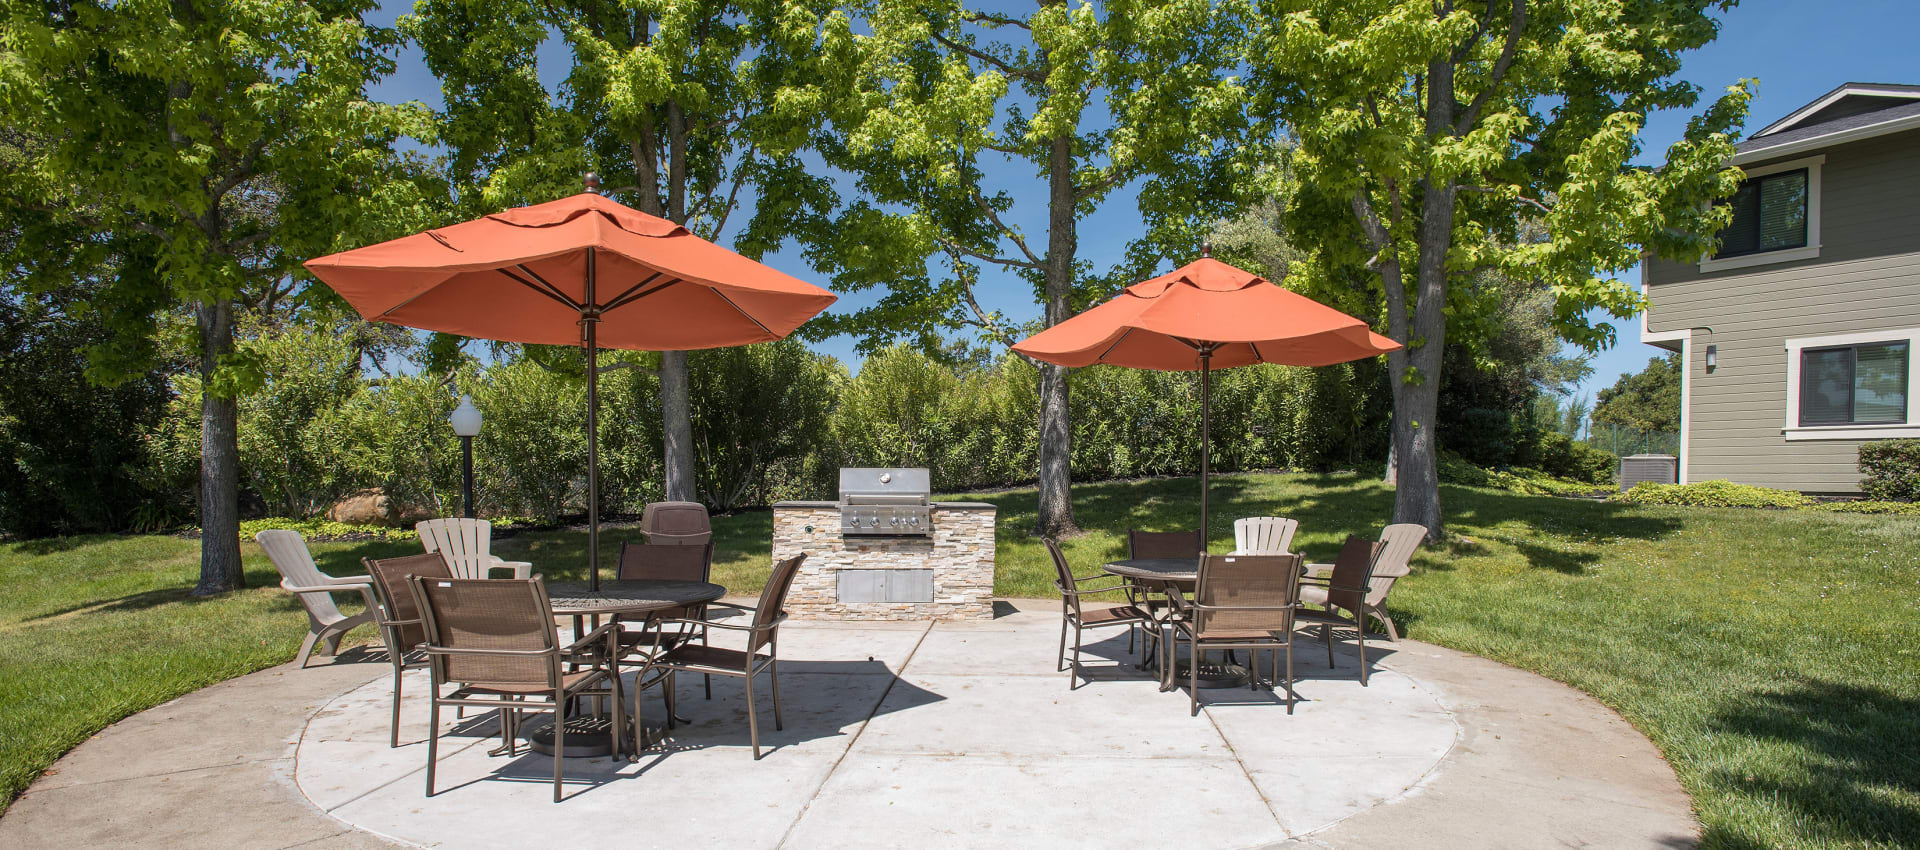 Community barbecue area at Ridgecrest Apartment Homes in Martinez, California